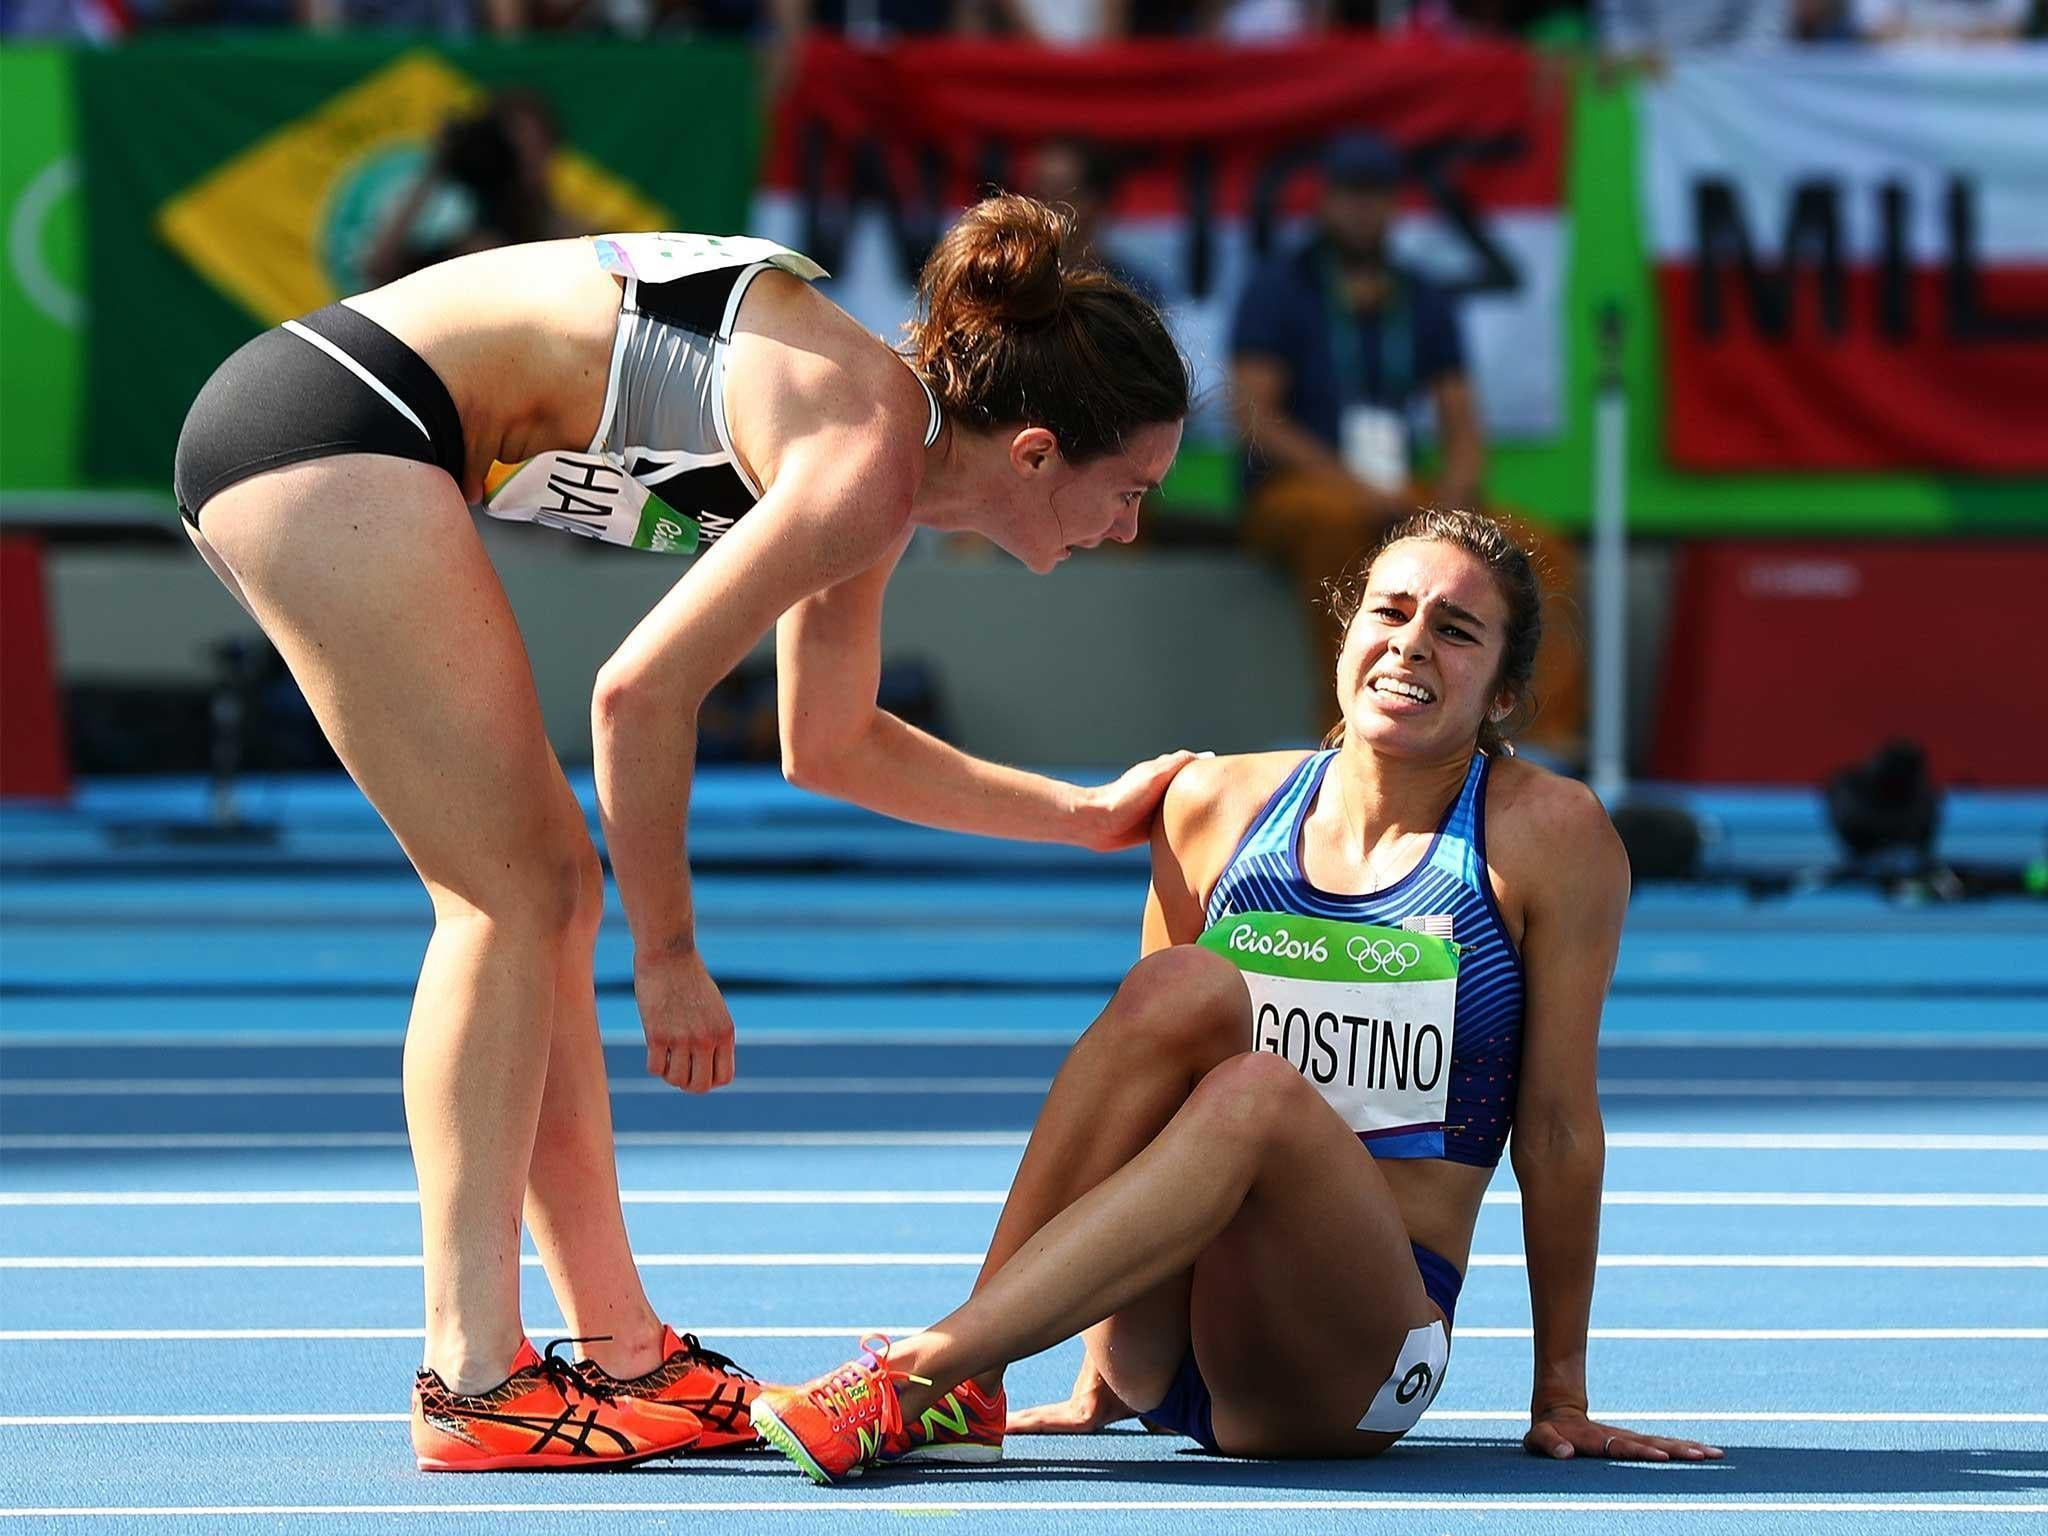 American runner Abbey D'Agostino takes a tumble